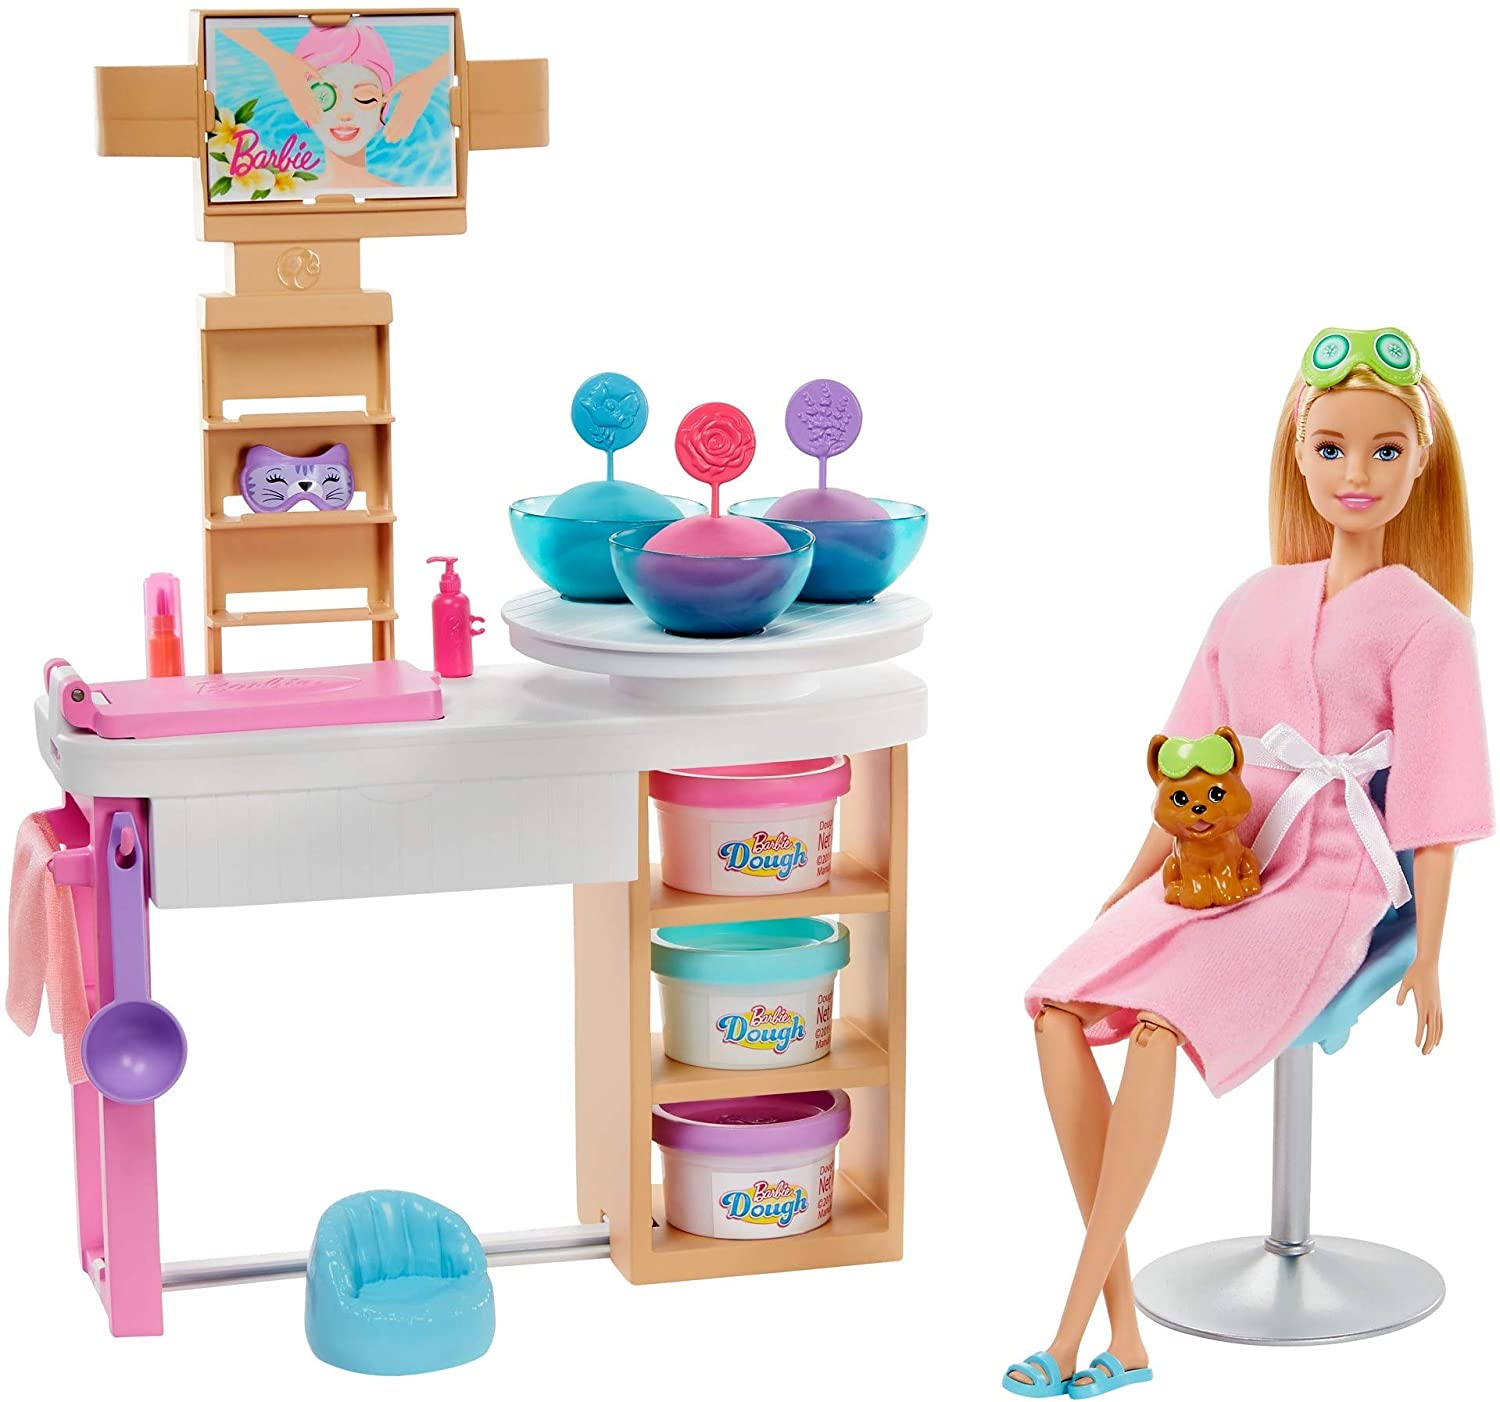 Review of Barbie Face Mask Spa Day Playset with Blonde Barbie Doll, Puppy, 3 Tubs